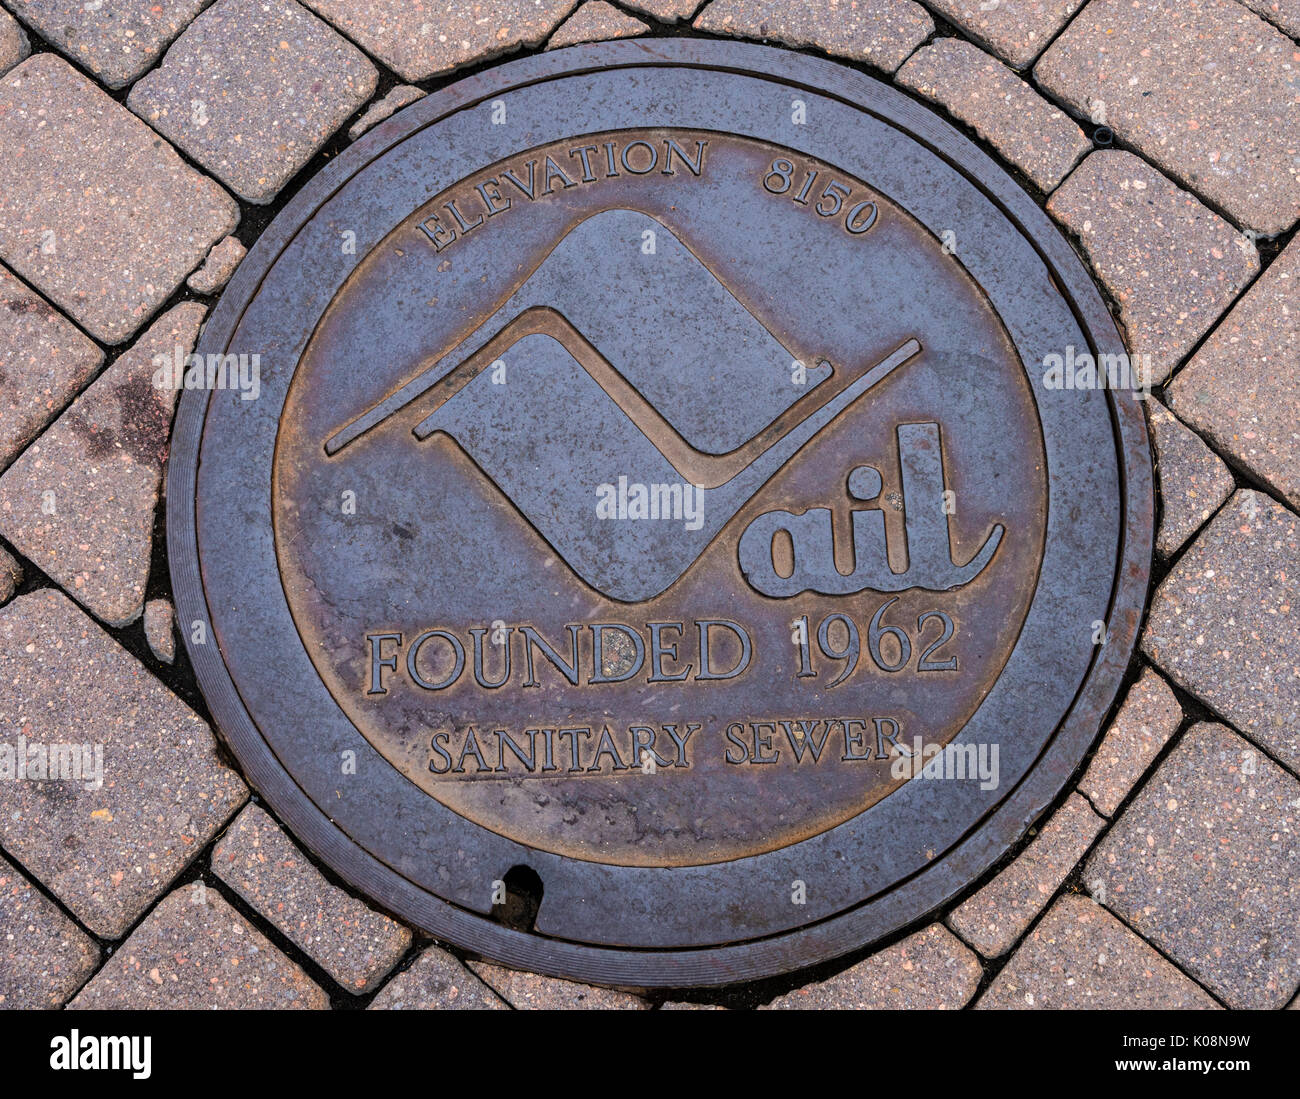 Manhole sewer cover in Vail Colorado USA - Stock Image